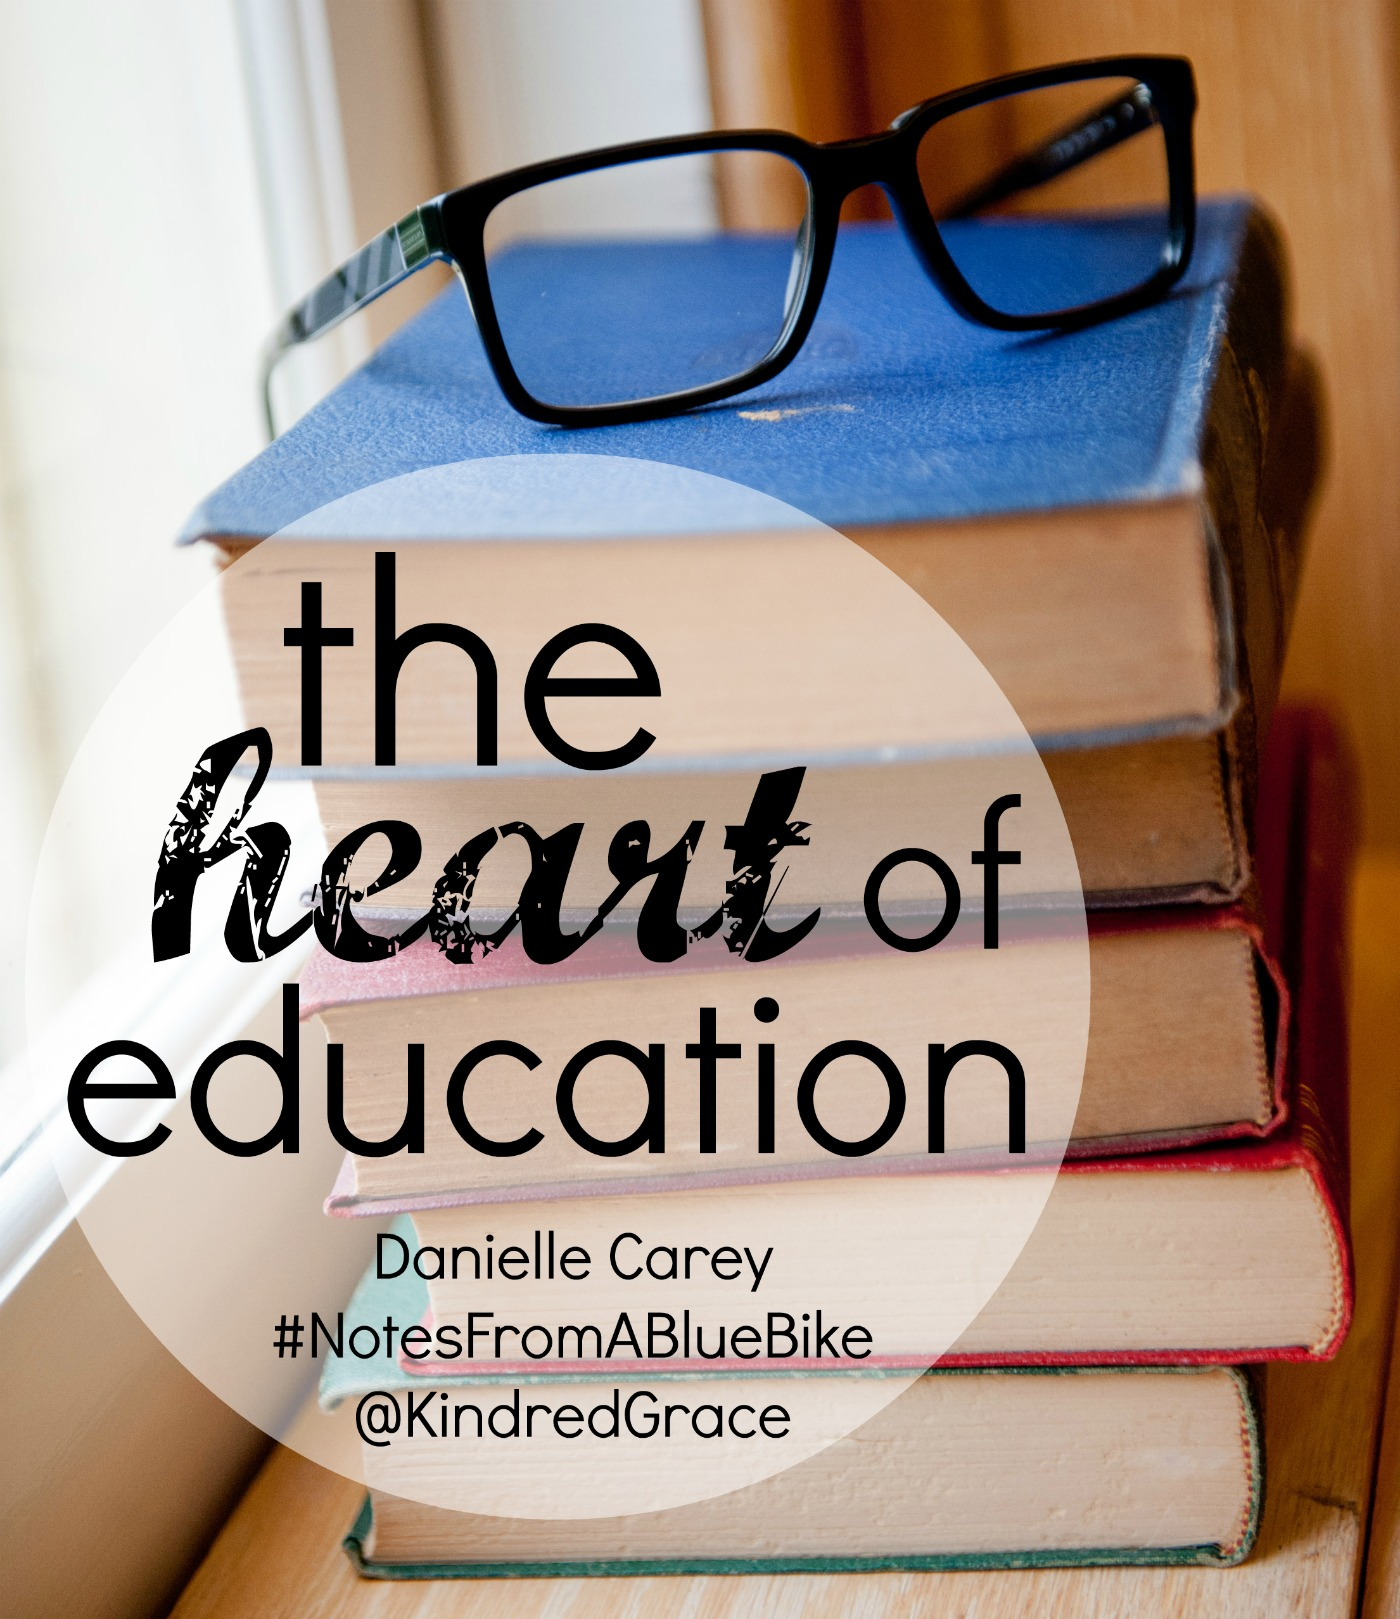 the heart of education - #NotesFromABlueBike at @KindredGrace